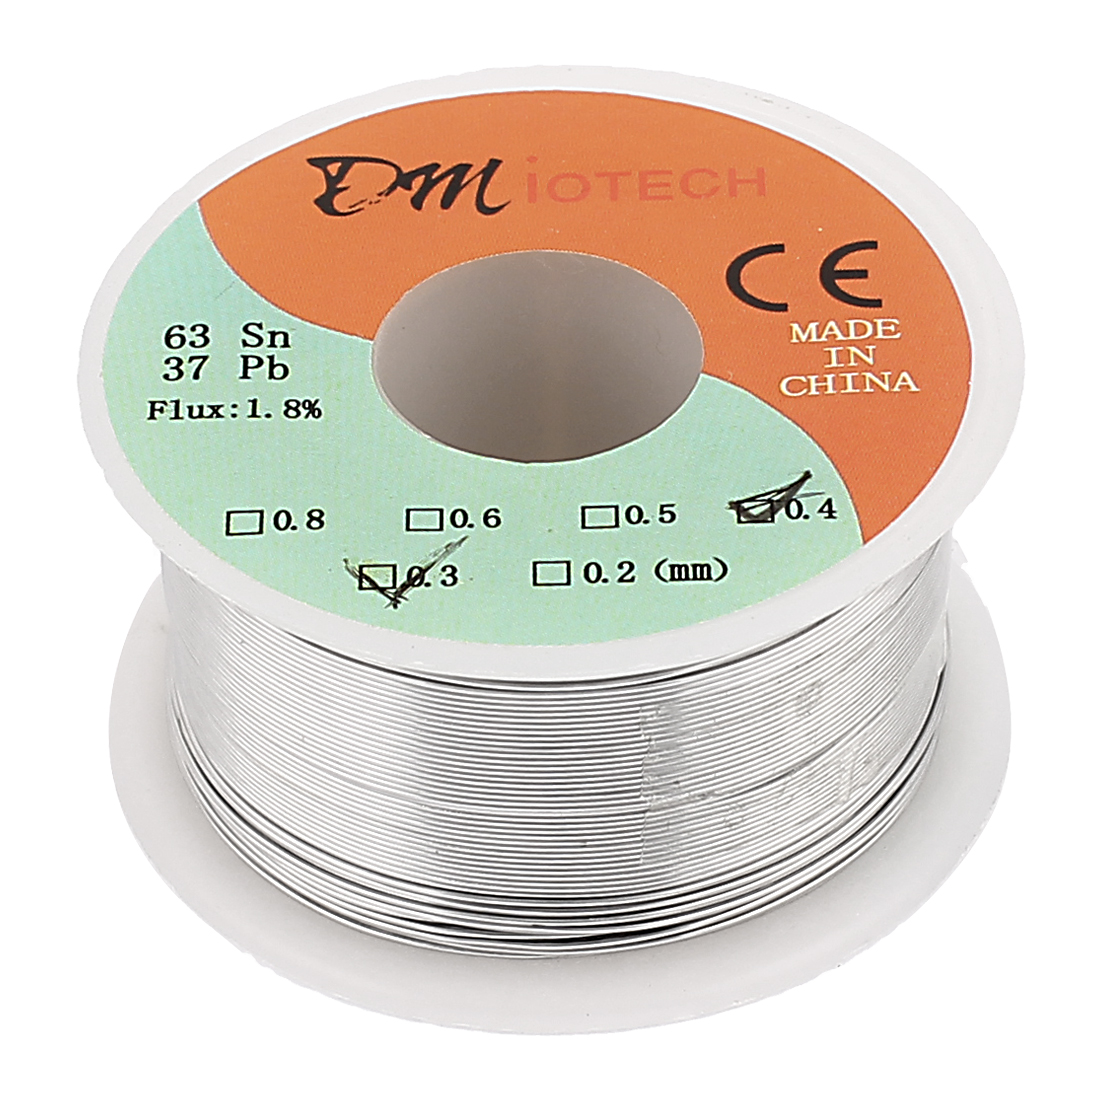 0.3-0.43mm Rosin Core Solder Tin Lead Solder Wire 63/37 for Electrical Soldering 100g